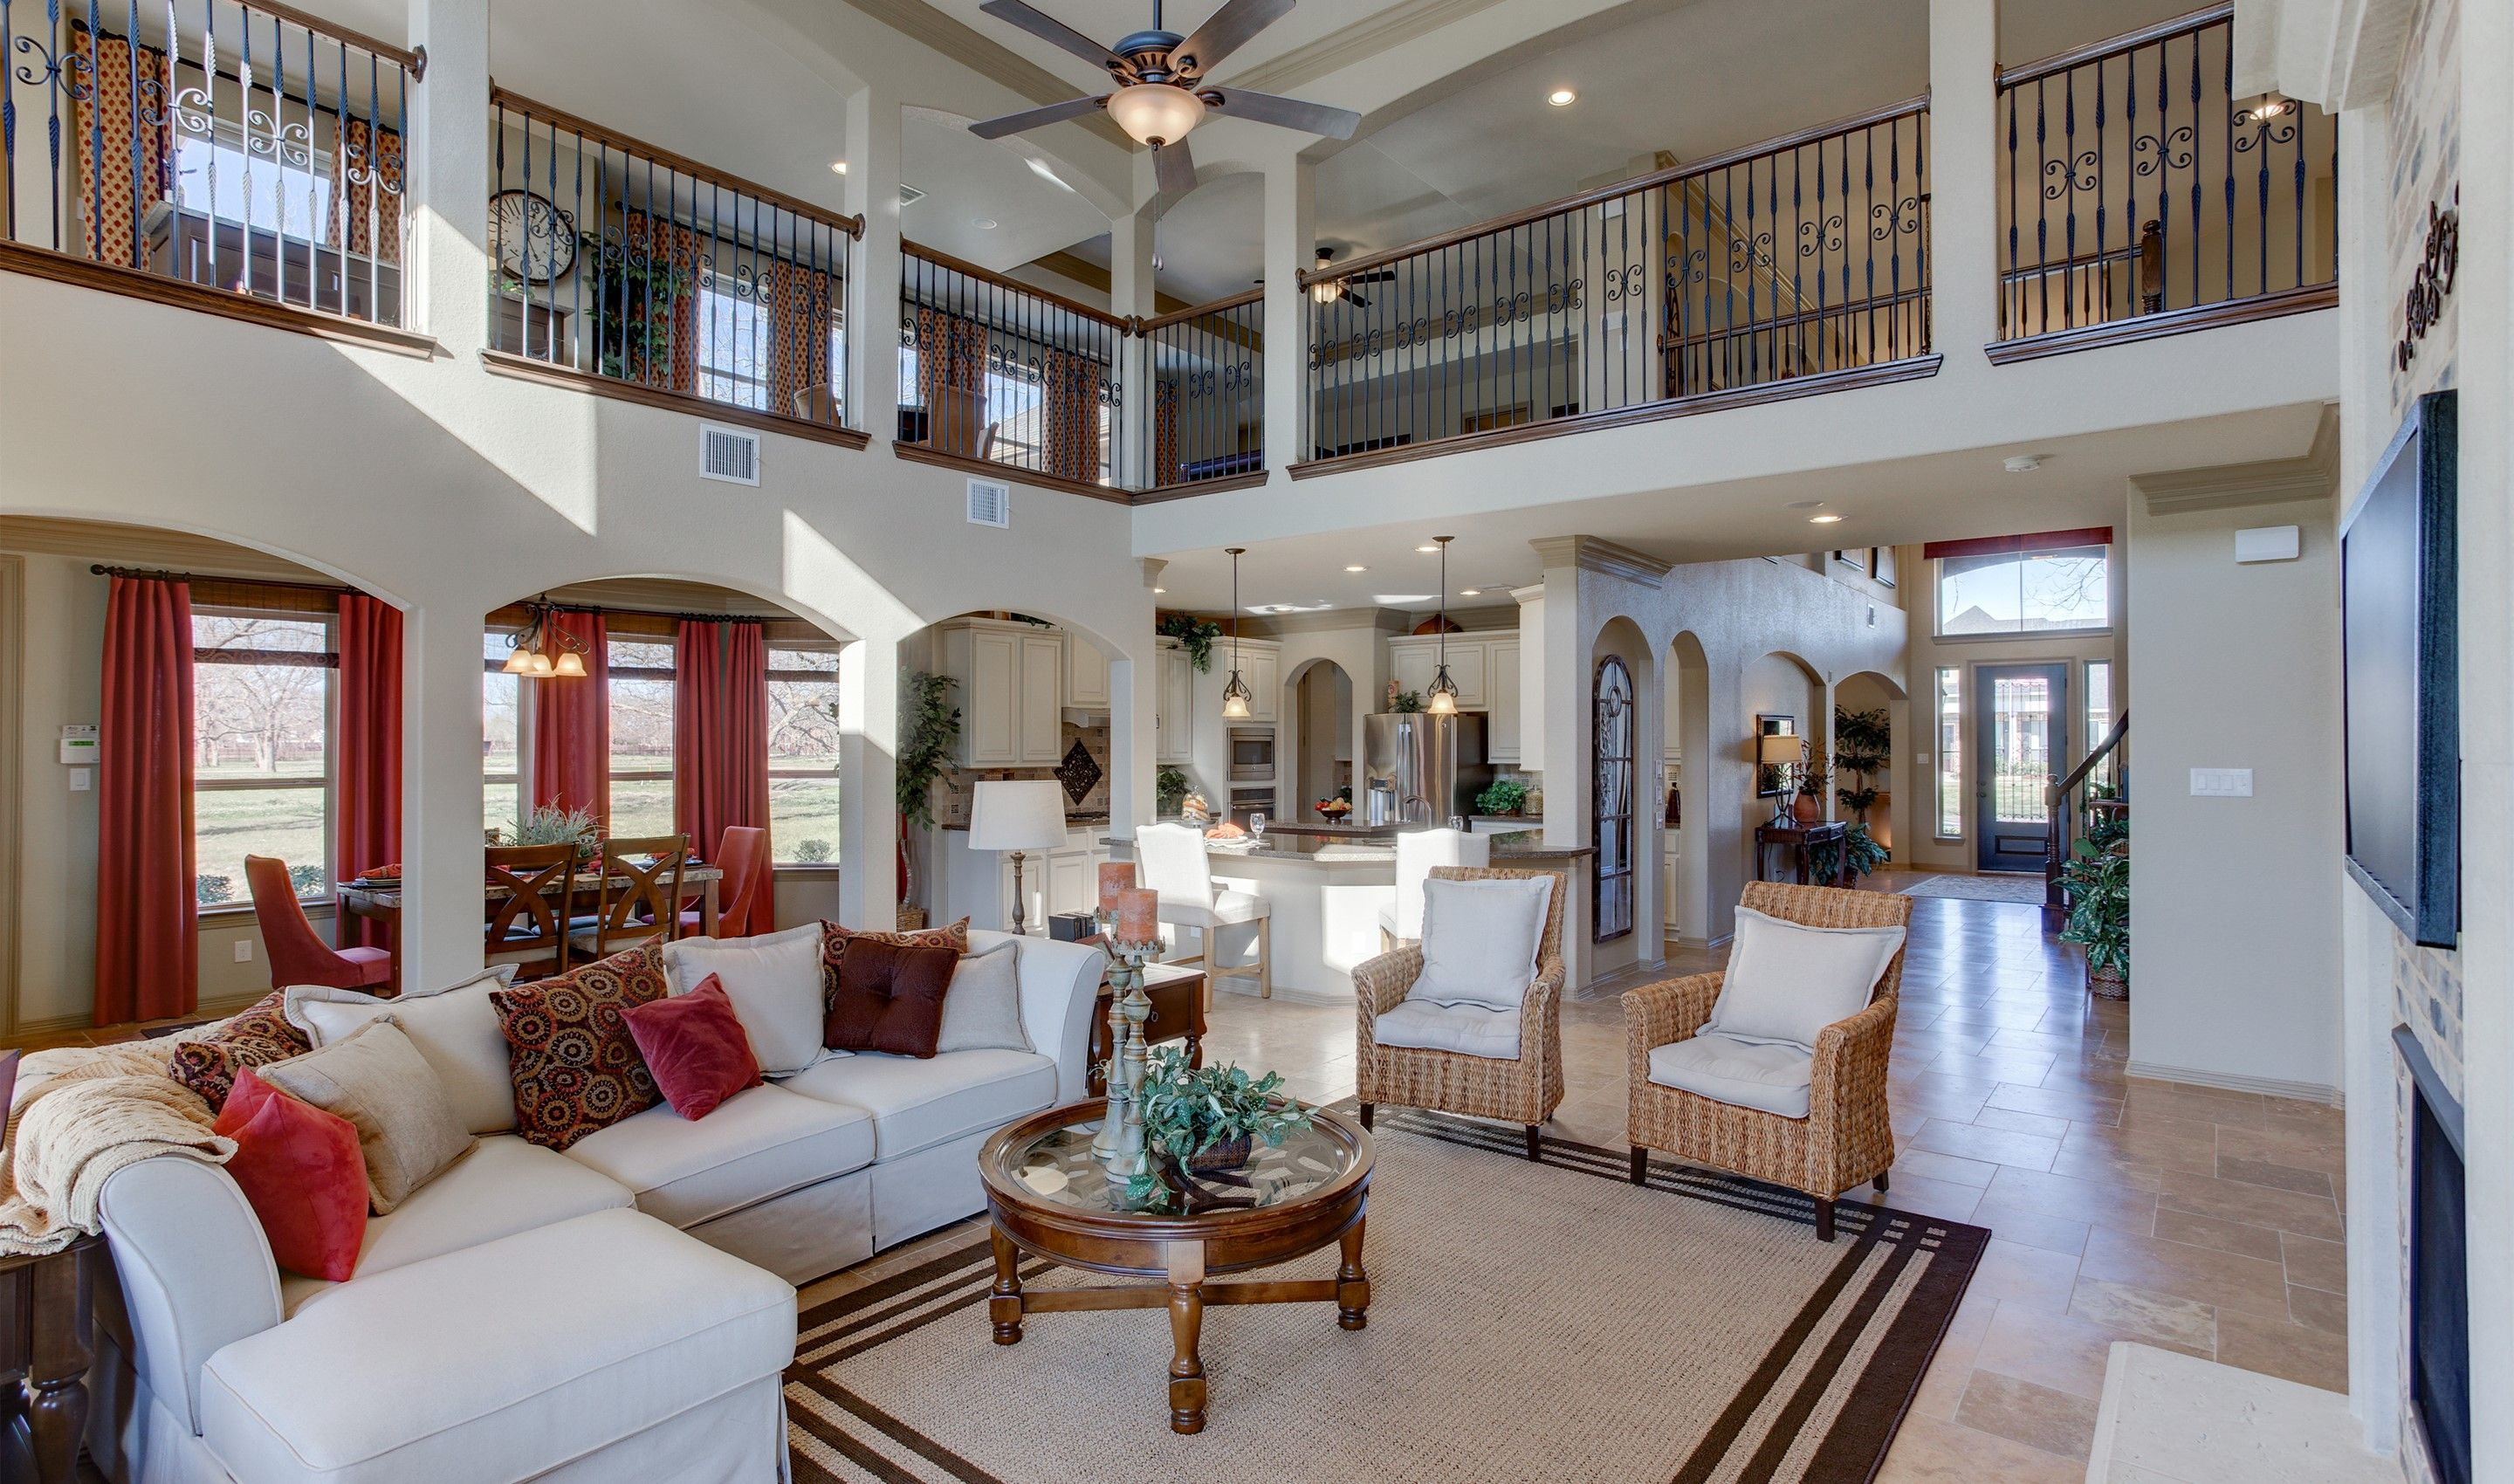 Single Family for Sale at Randolph 3911 Crystal Cascade Lane, Homesite 3 Richmond, Texas 77406 United States